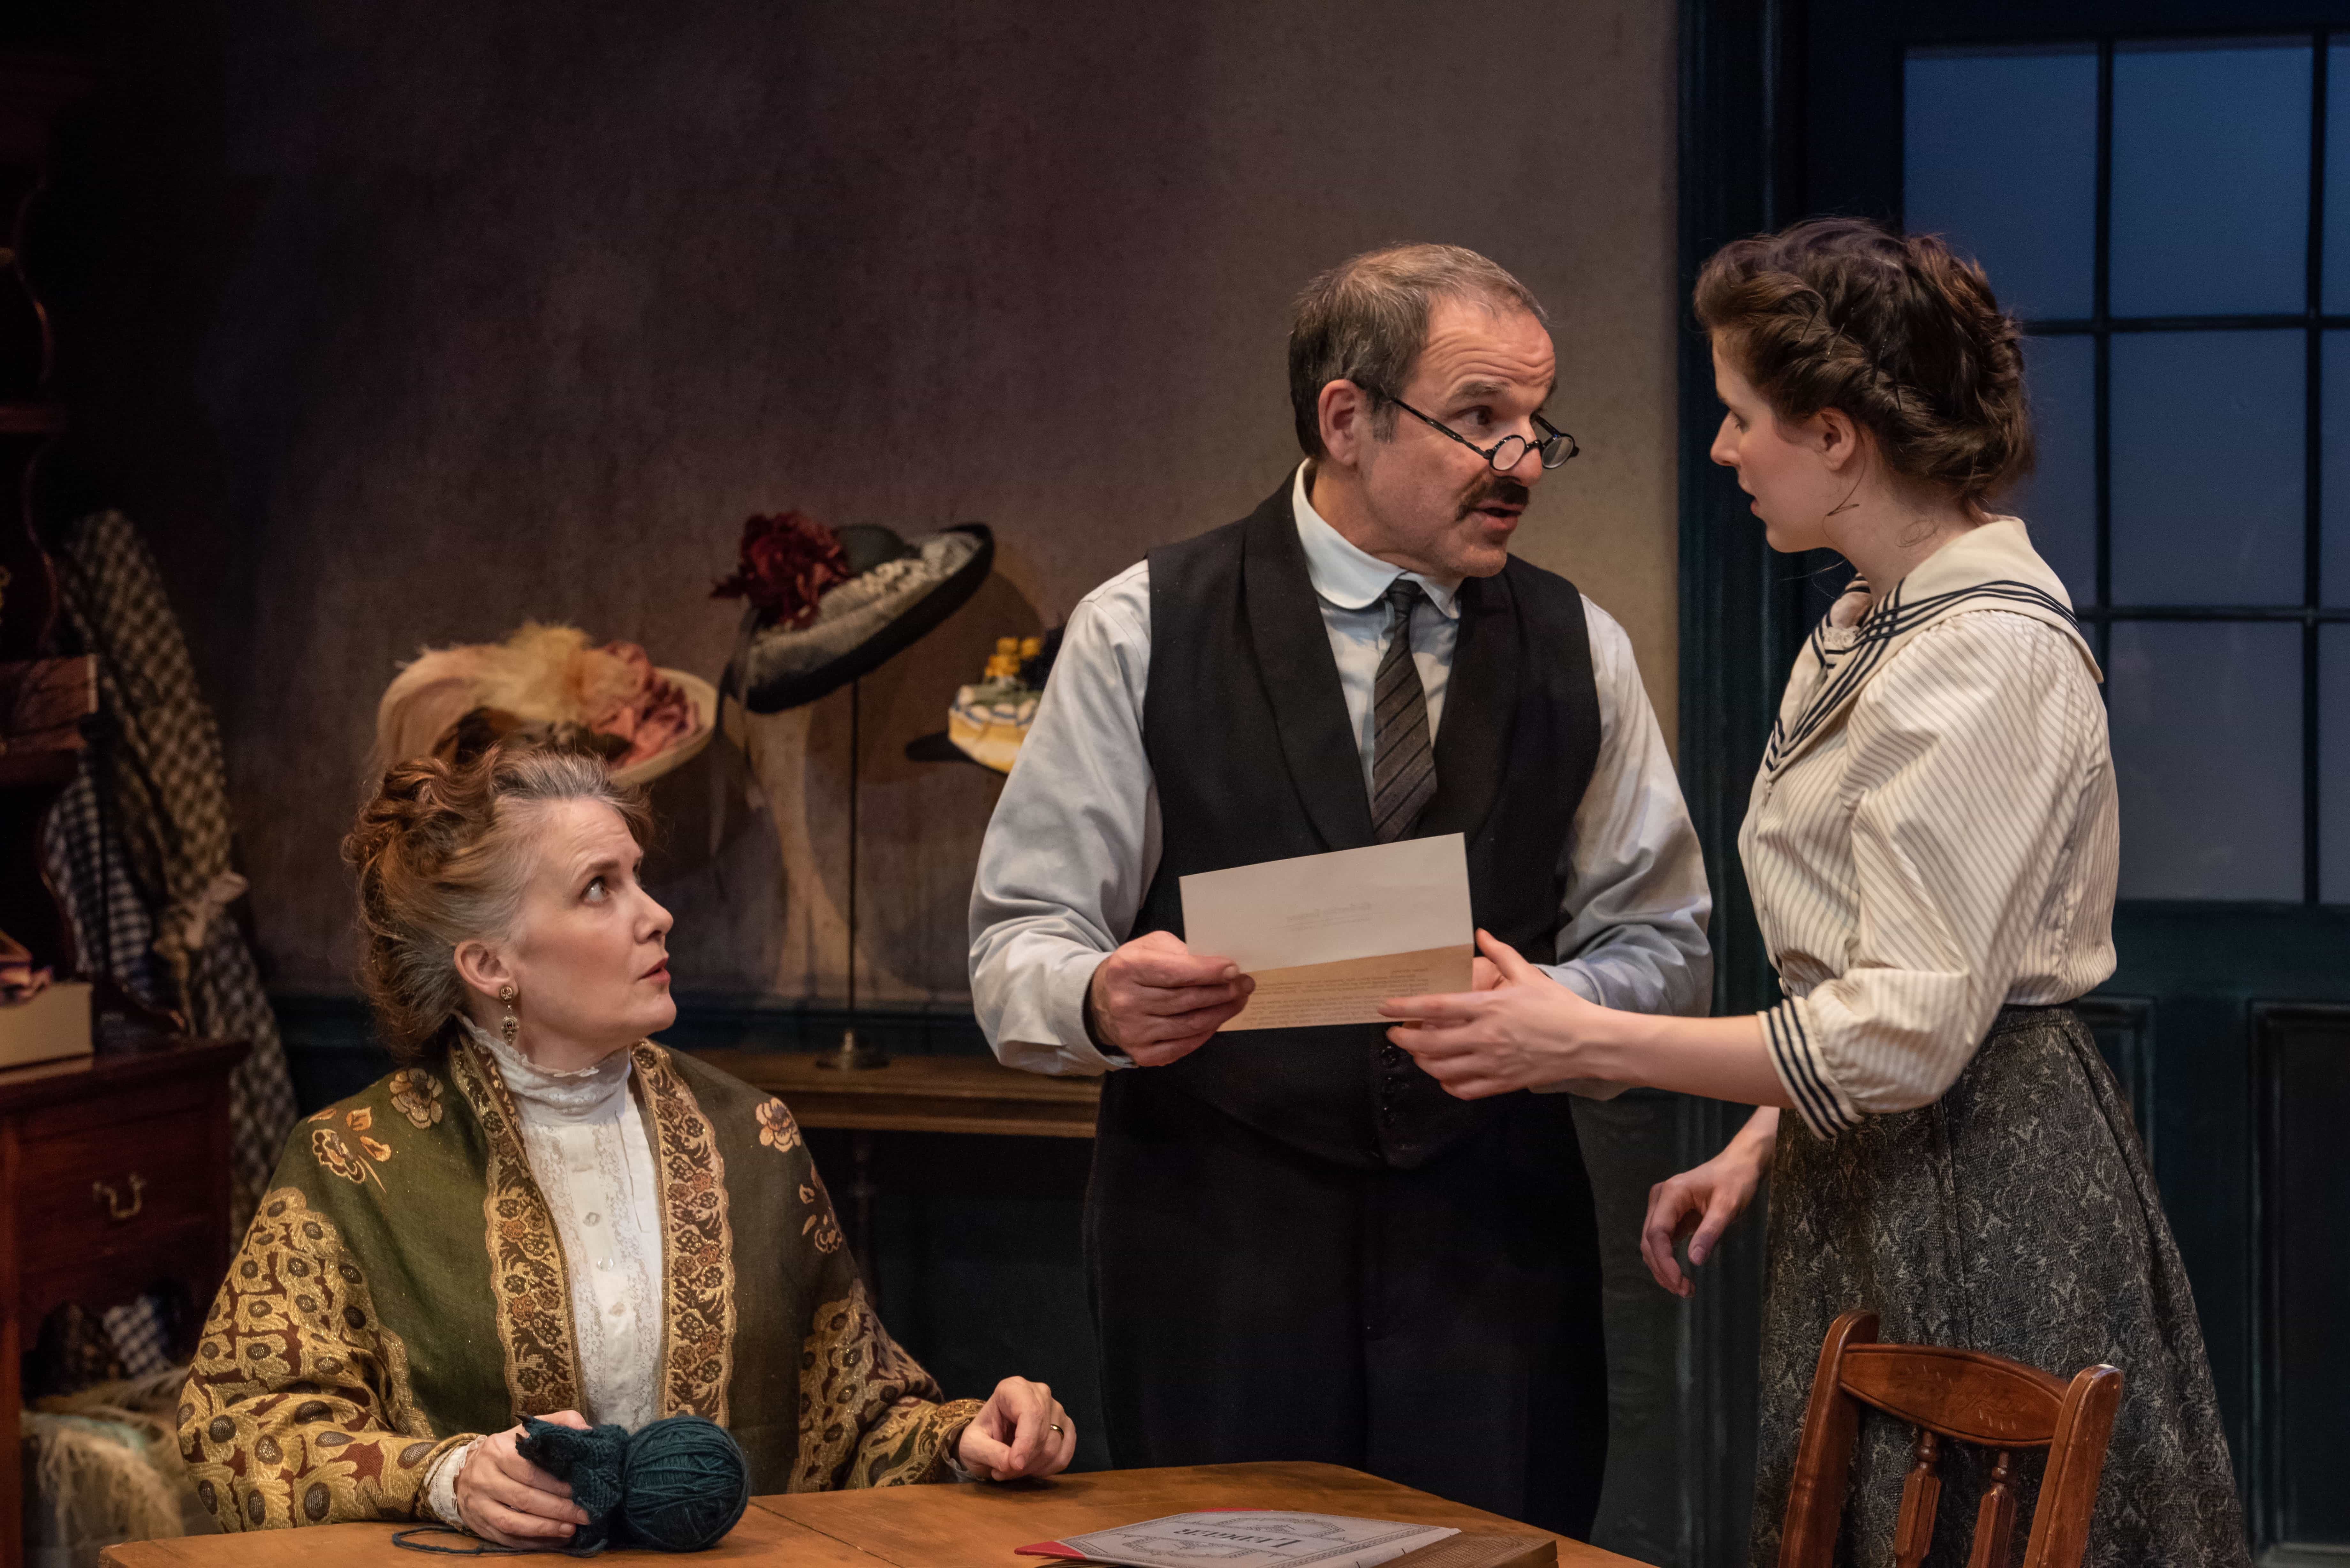 Tracy Sallows, Donald Corren, and Emma Geer. Photo by Todd Cerveris.